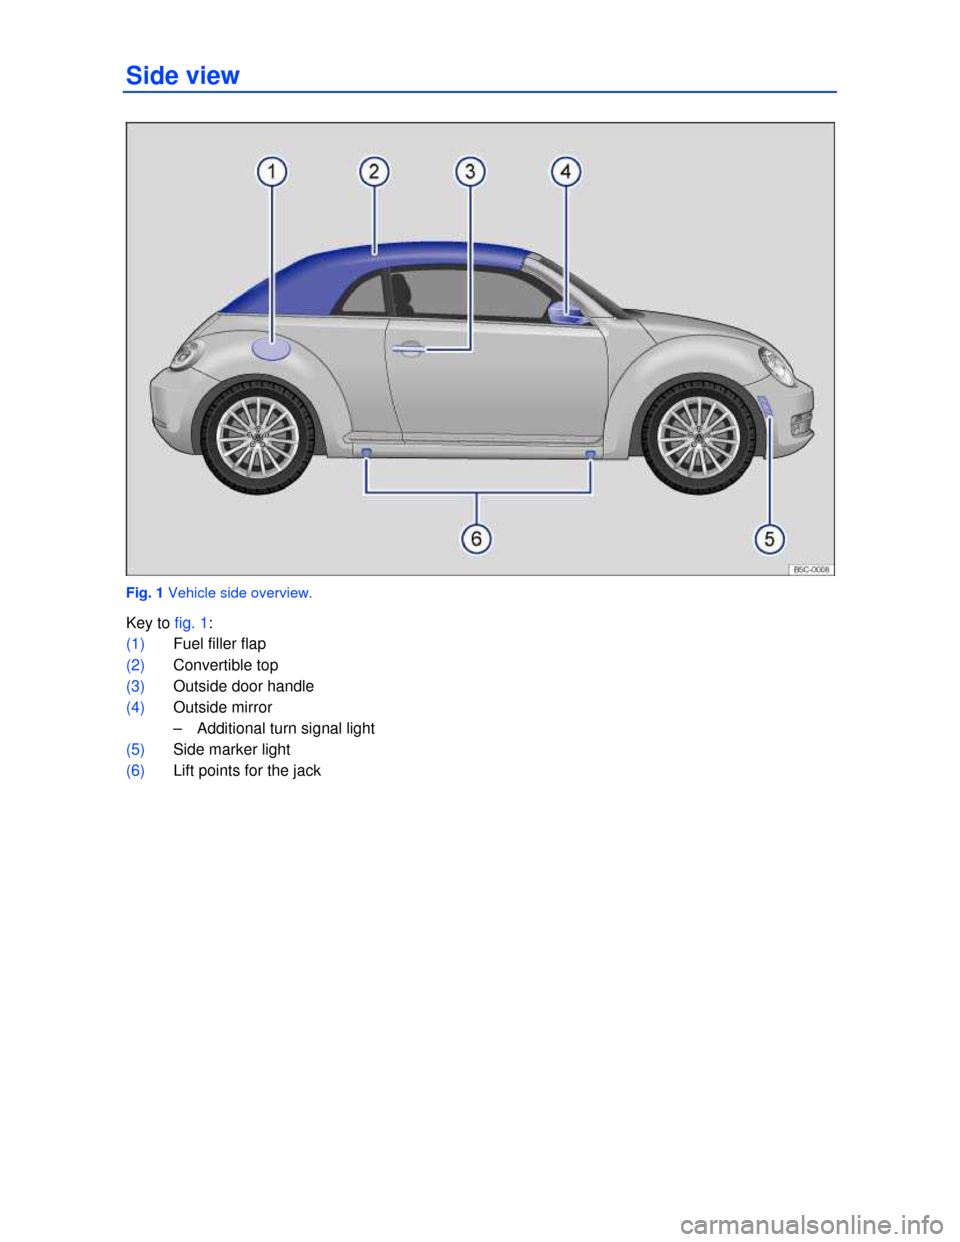 VOLKSWAGEN BEETLE CONVERTIBLE 2013 3.G Owners Manual   Side view    Fig. 1 Vehicle side overview.  Key to fig. 1:  (1) Fuel filler flap   (2) Convertible top   (3) Outside door handle   (4) Outside mirror   –  Additional turn signal light   (5) Side m